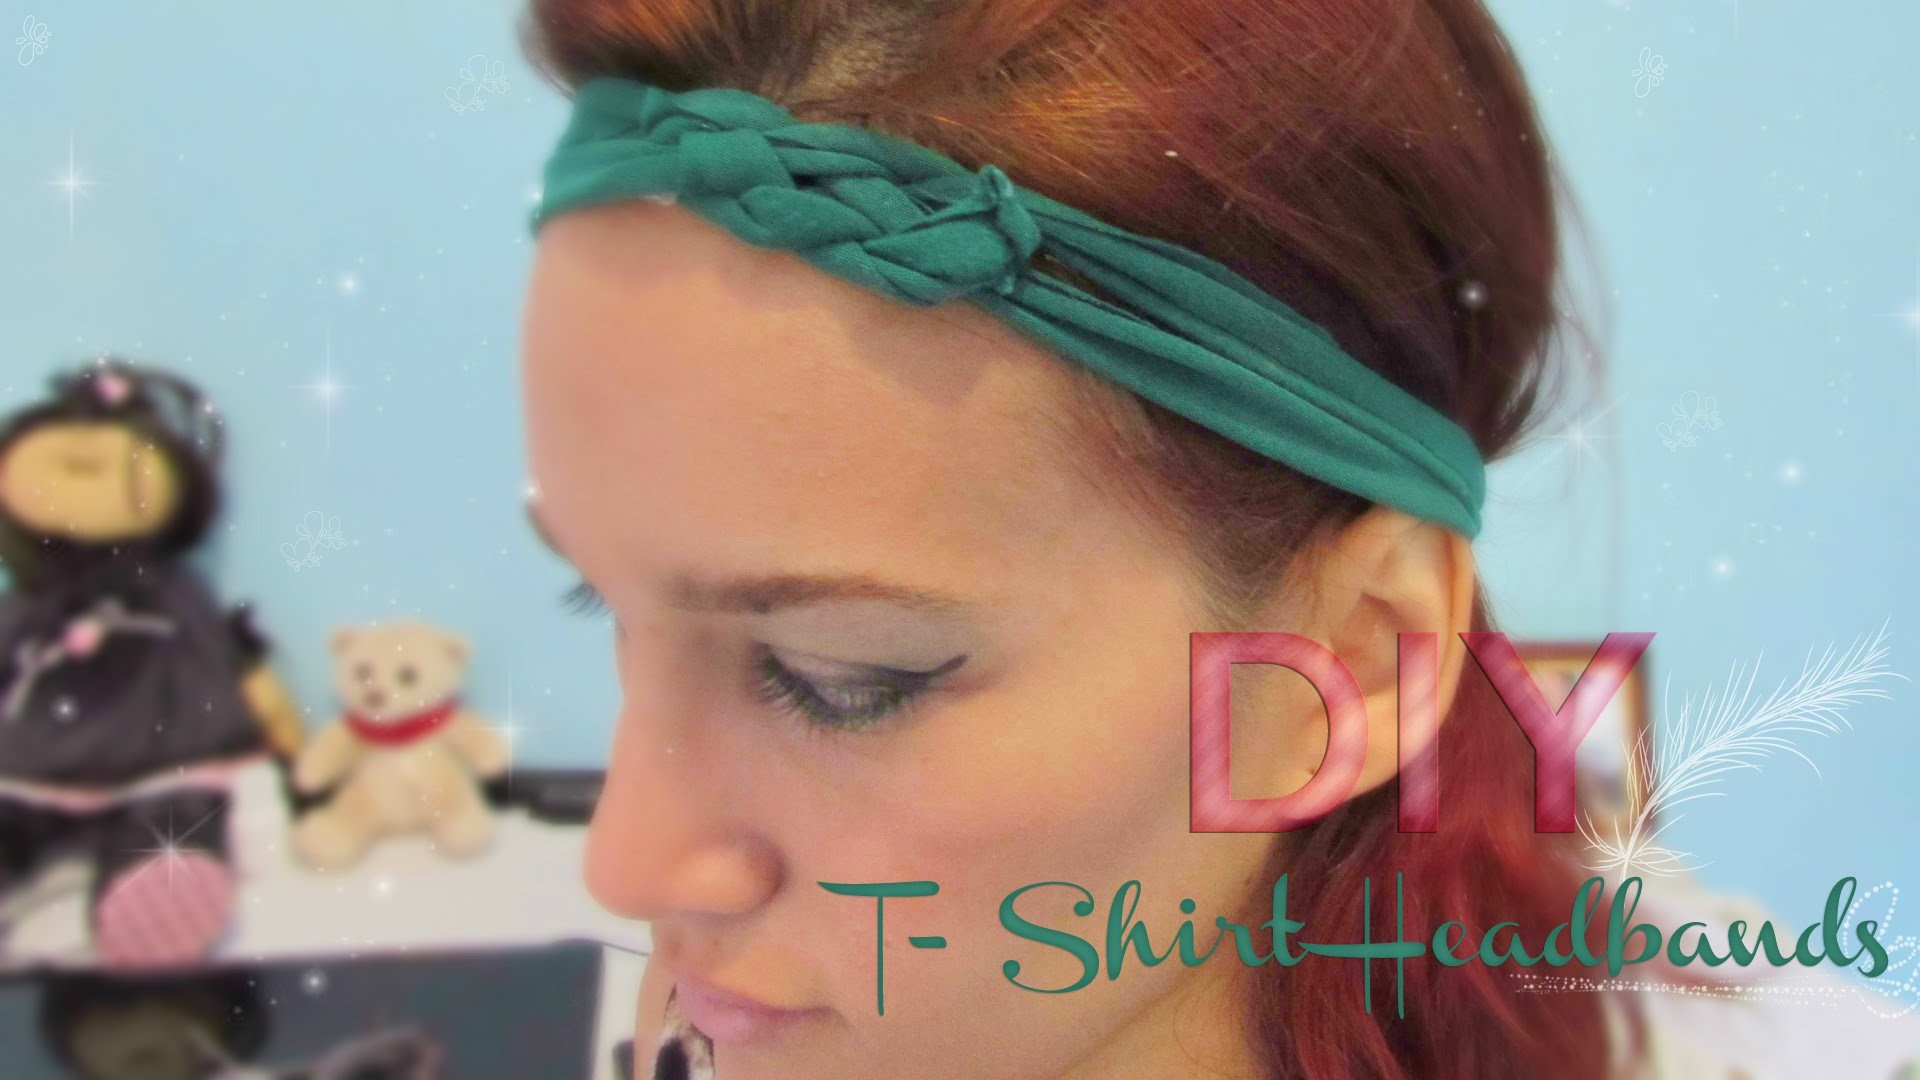 DIY T-Shirt Headband | Stephanie Ferreira